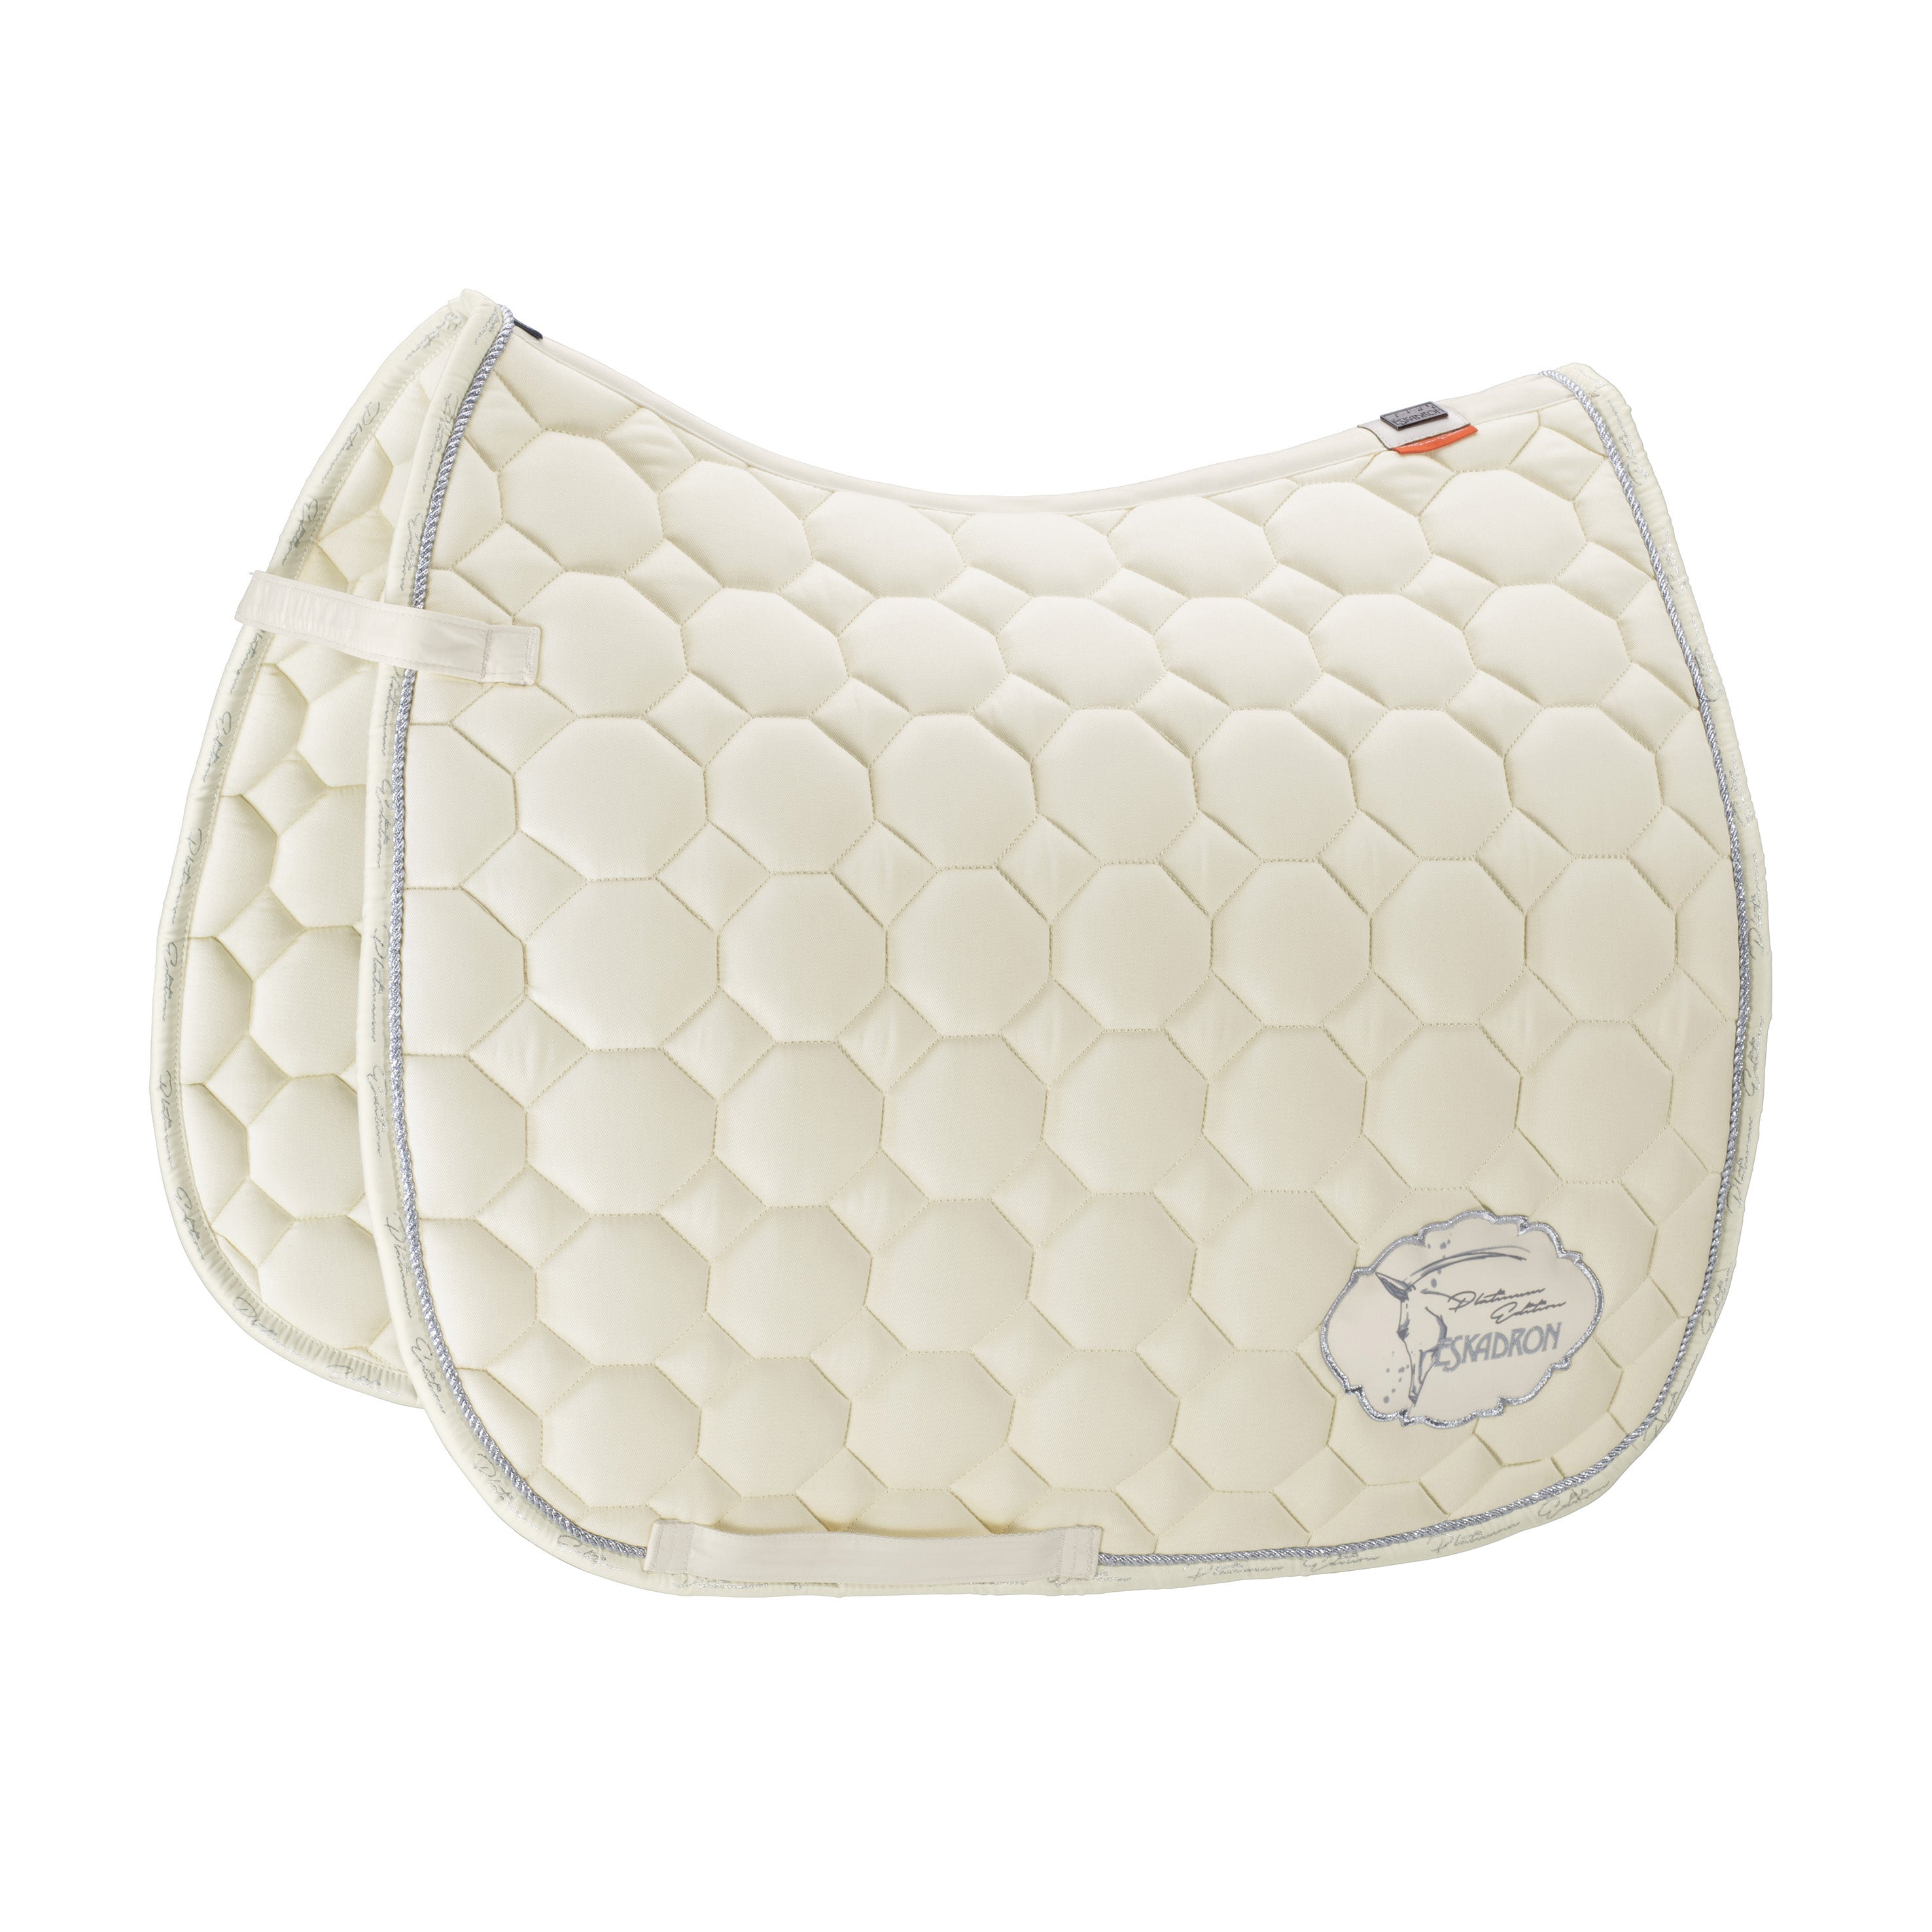 ESKADRON PLATINUM 19/20 COTTON EMBLEM SADDLE PAD - Off White - Divine Equestrian